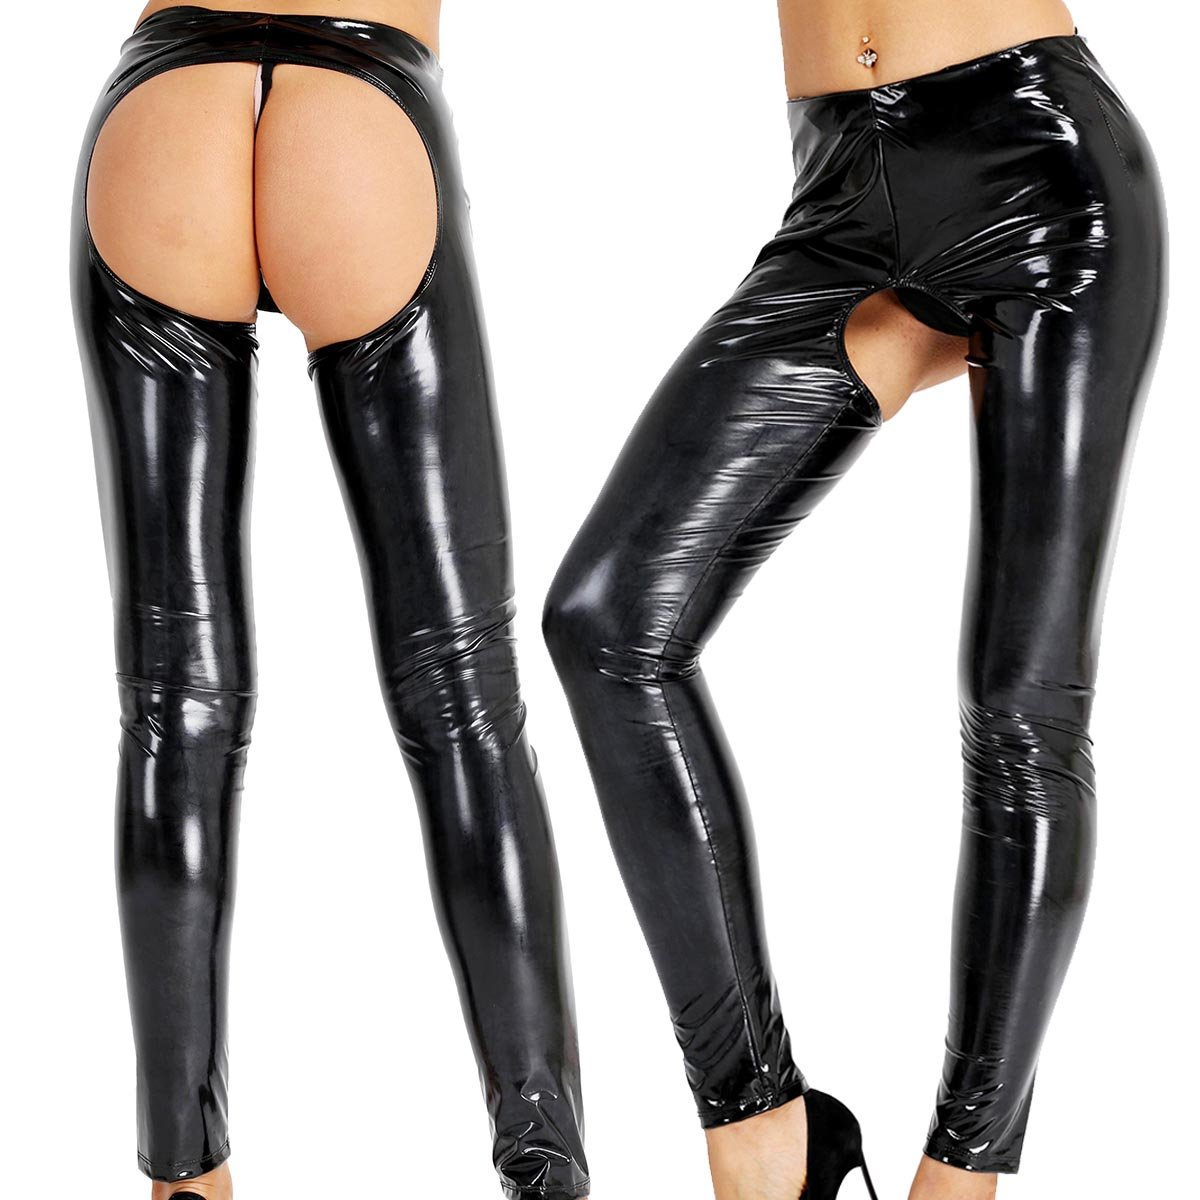 bb6f1e66147ce2 YiZYiF Womens Lingerie PVC Leather Wet Look Leggings Open Crotch Skinny  Long Pants at Amazon Women's Clothing store: